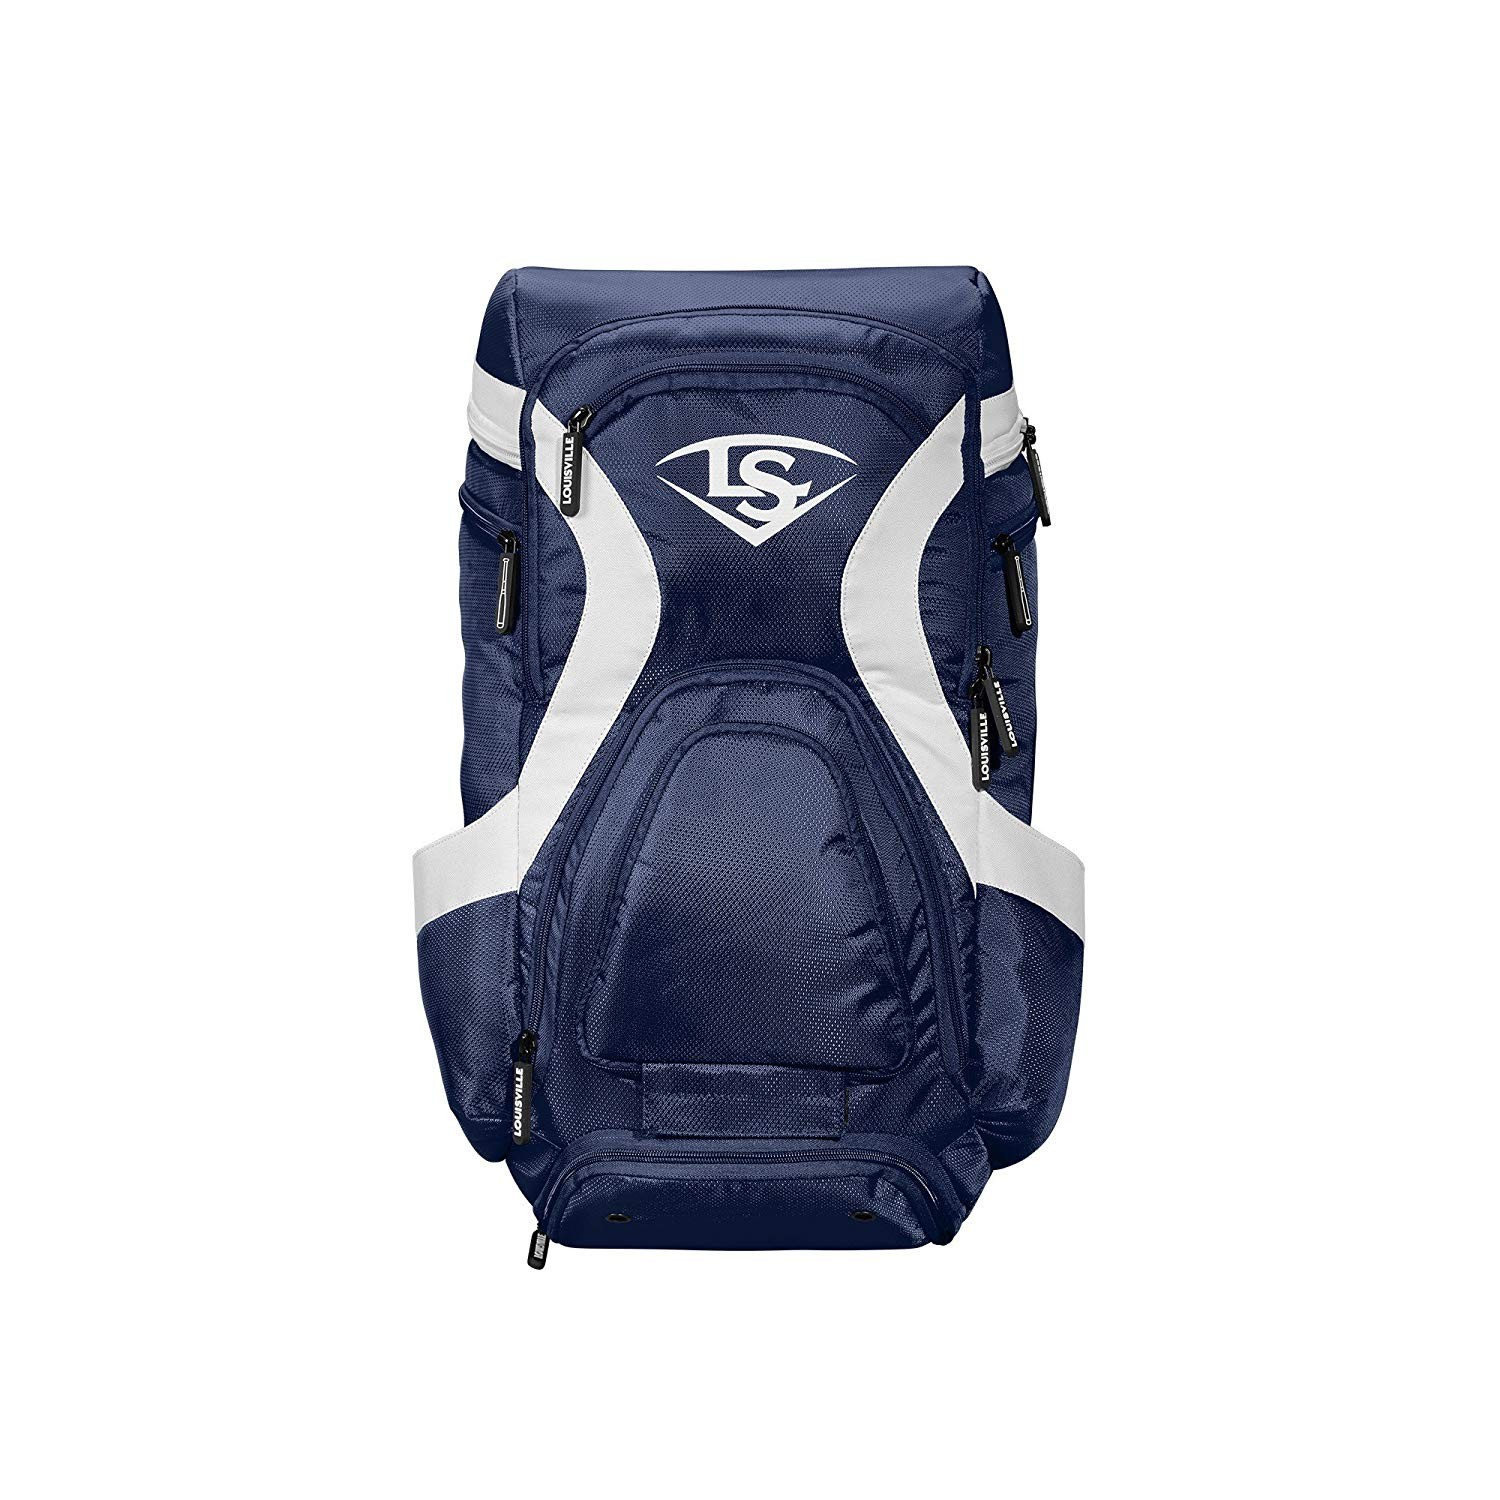 Louisville Slugger M9 Stick Baseball Backpack Navy